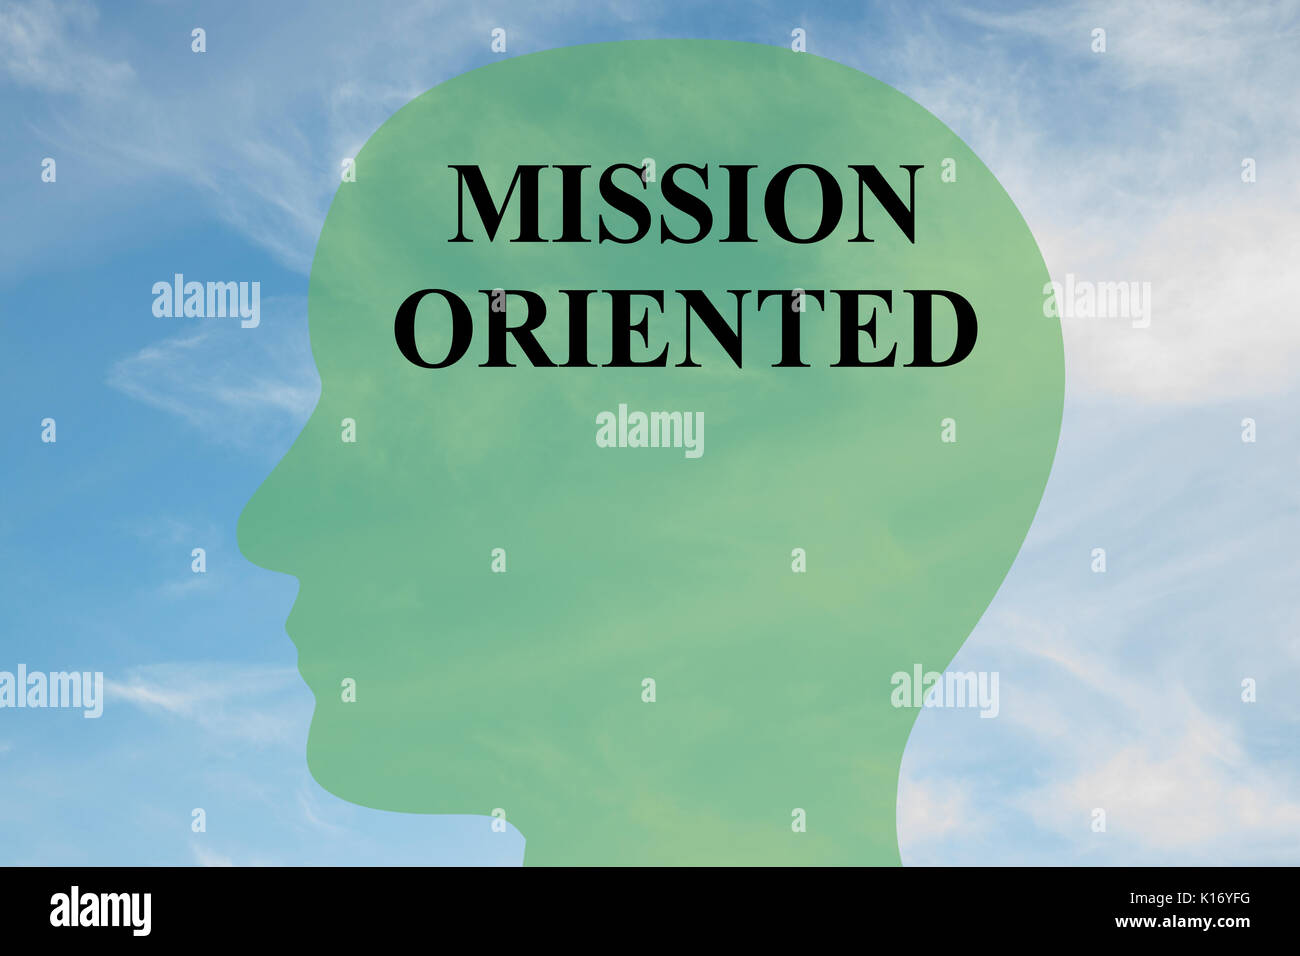 Render illustration of 'MISSION ORIENTED' script on head silhouette, with cloudy sky as a background. - Stock Image